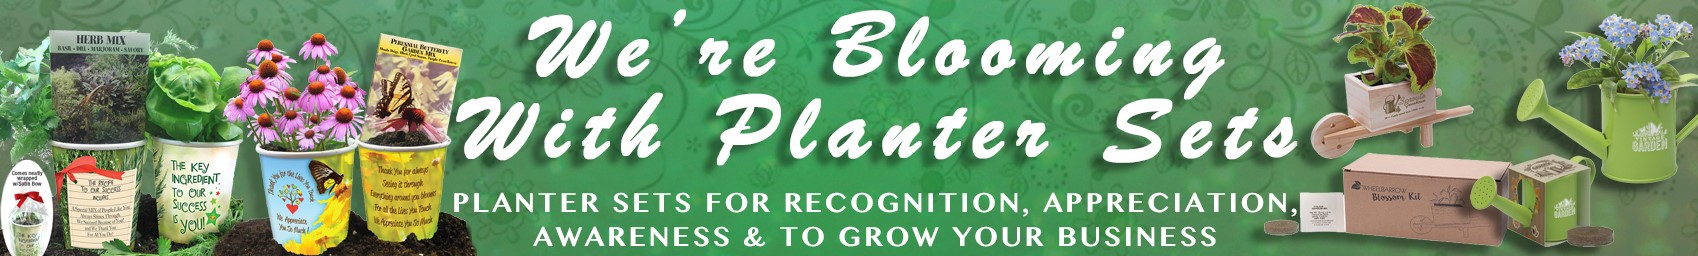 Appreciation Planter Gift Sets & Garden Promotional Products | Care Promotions